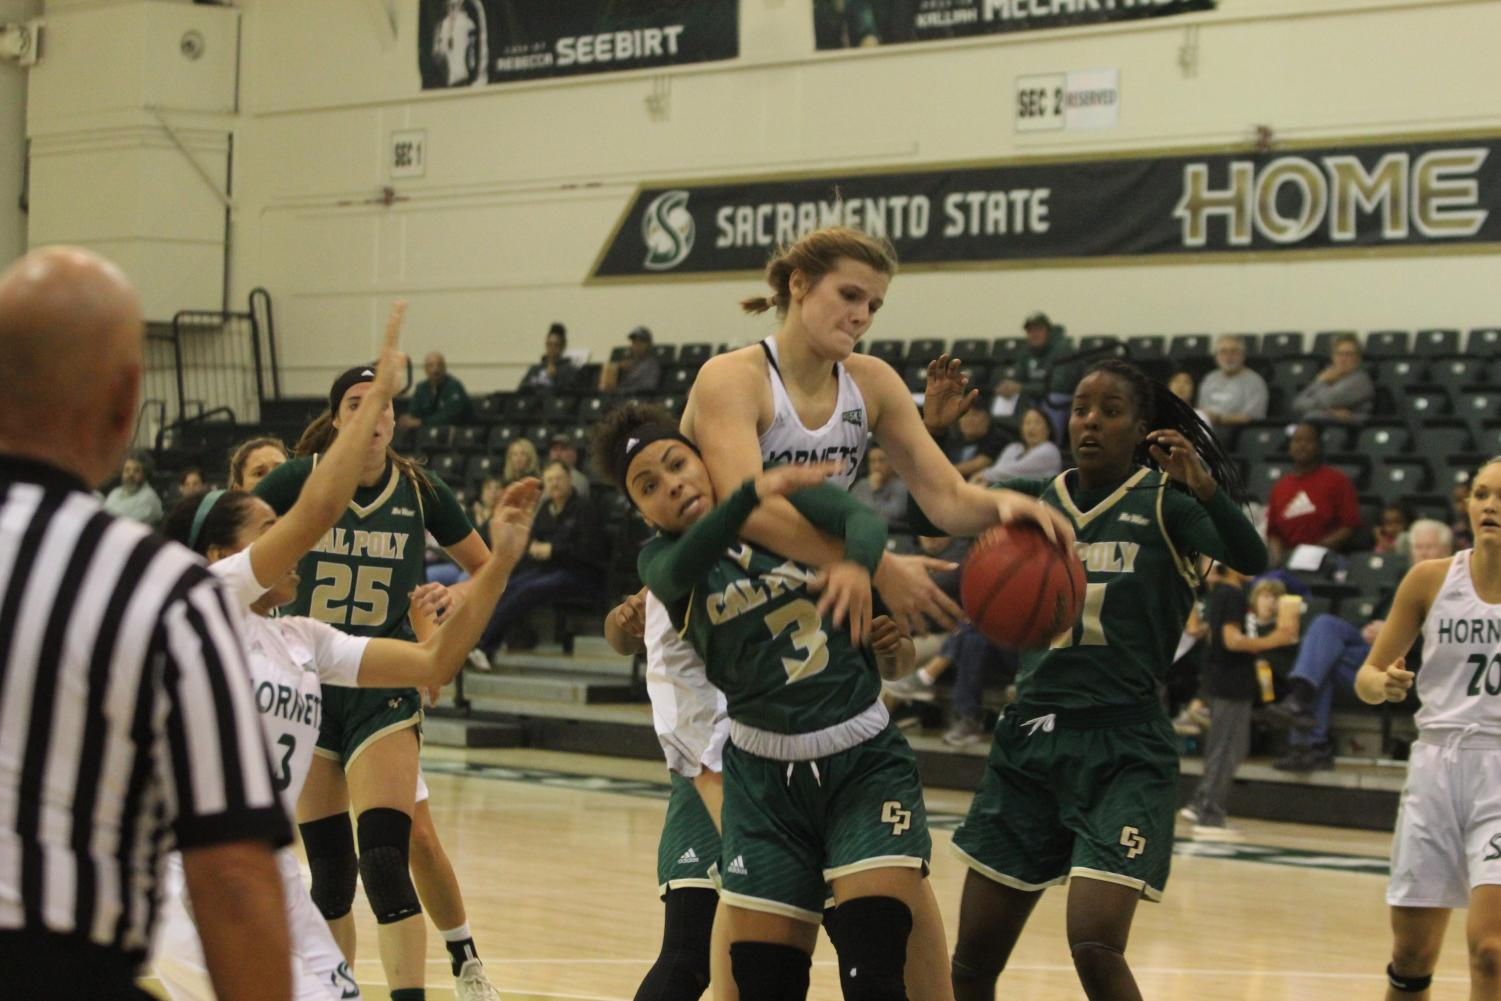 Sac+State+junior+forward+Kennedy+Nicholas+wrestles+for+control+of+the+ball+against+Cal+Poly+senior+guard+Dye+Stahley+in+a+88-85+win+against+the+Mustangs+at+the+Nest+on+Nov.+11.+